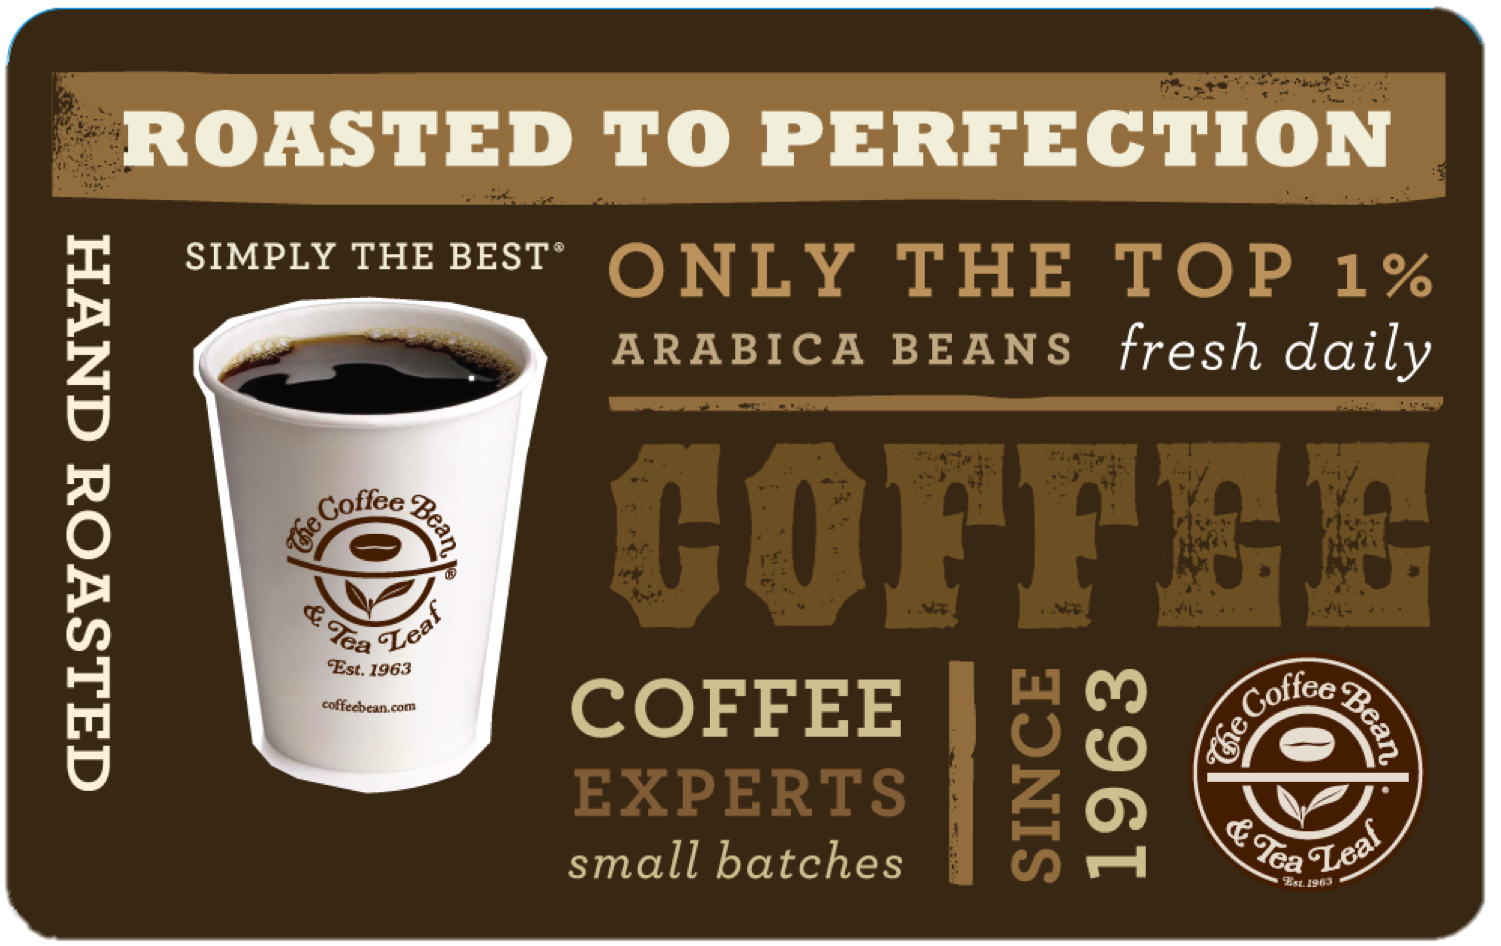 The Coffee Bean Card Coffee Design Gourmet Cafe Coffee Roasting Coffee Design